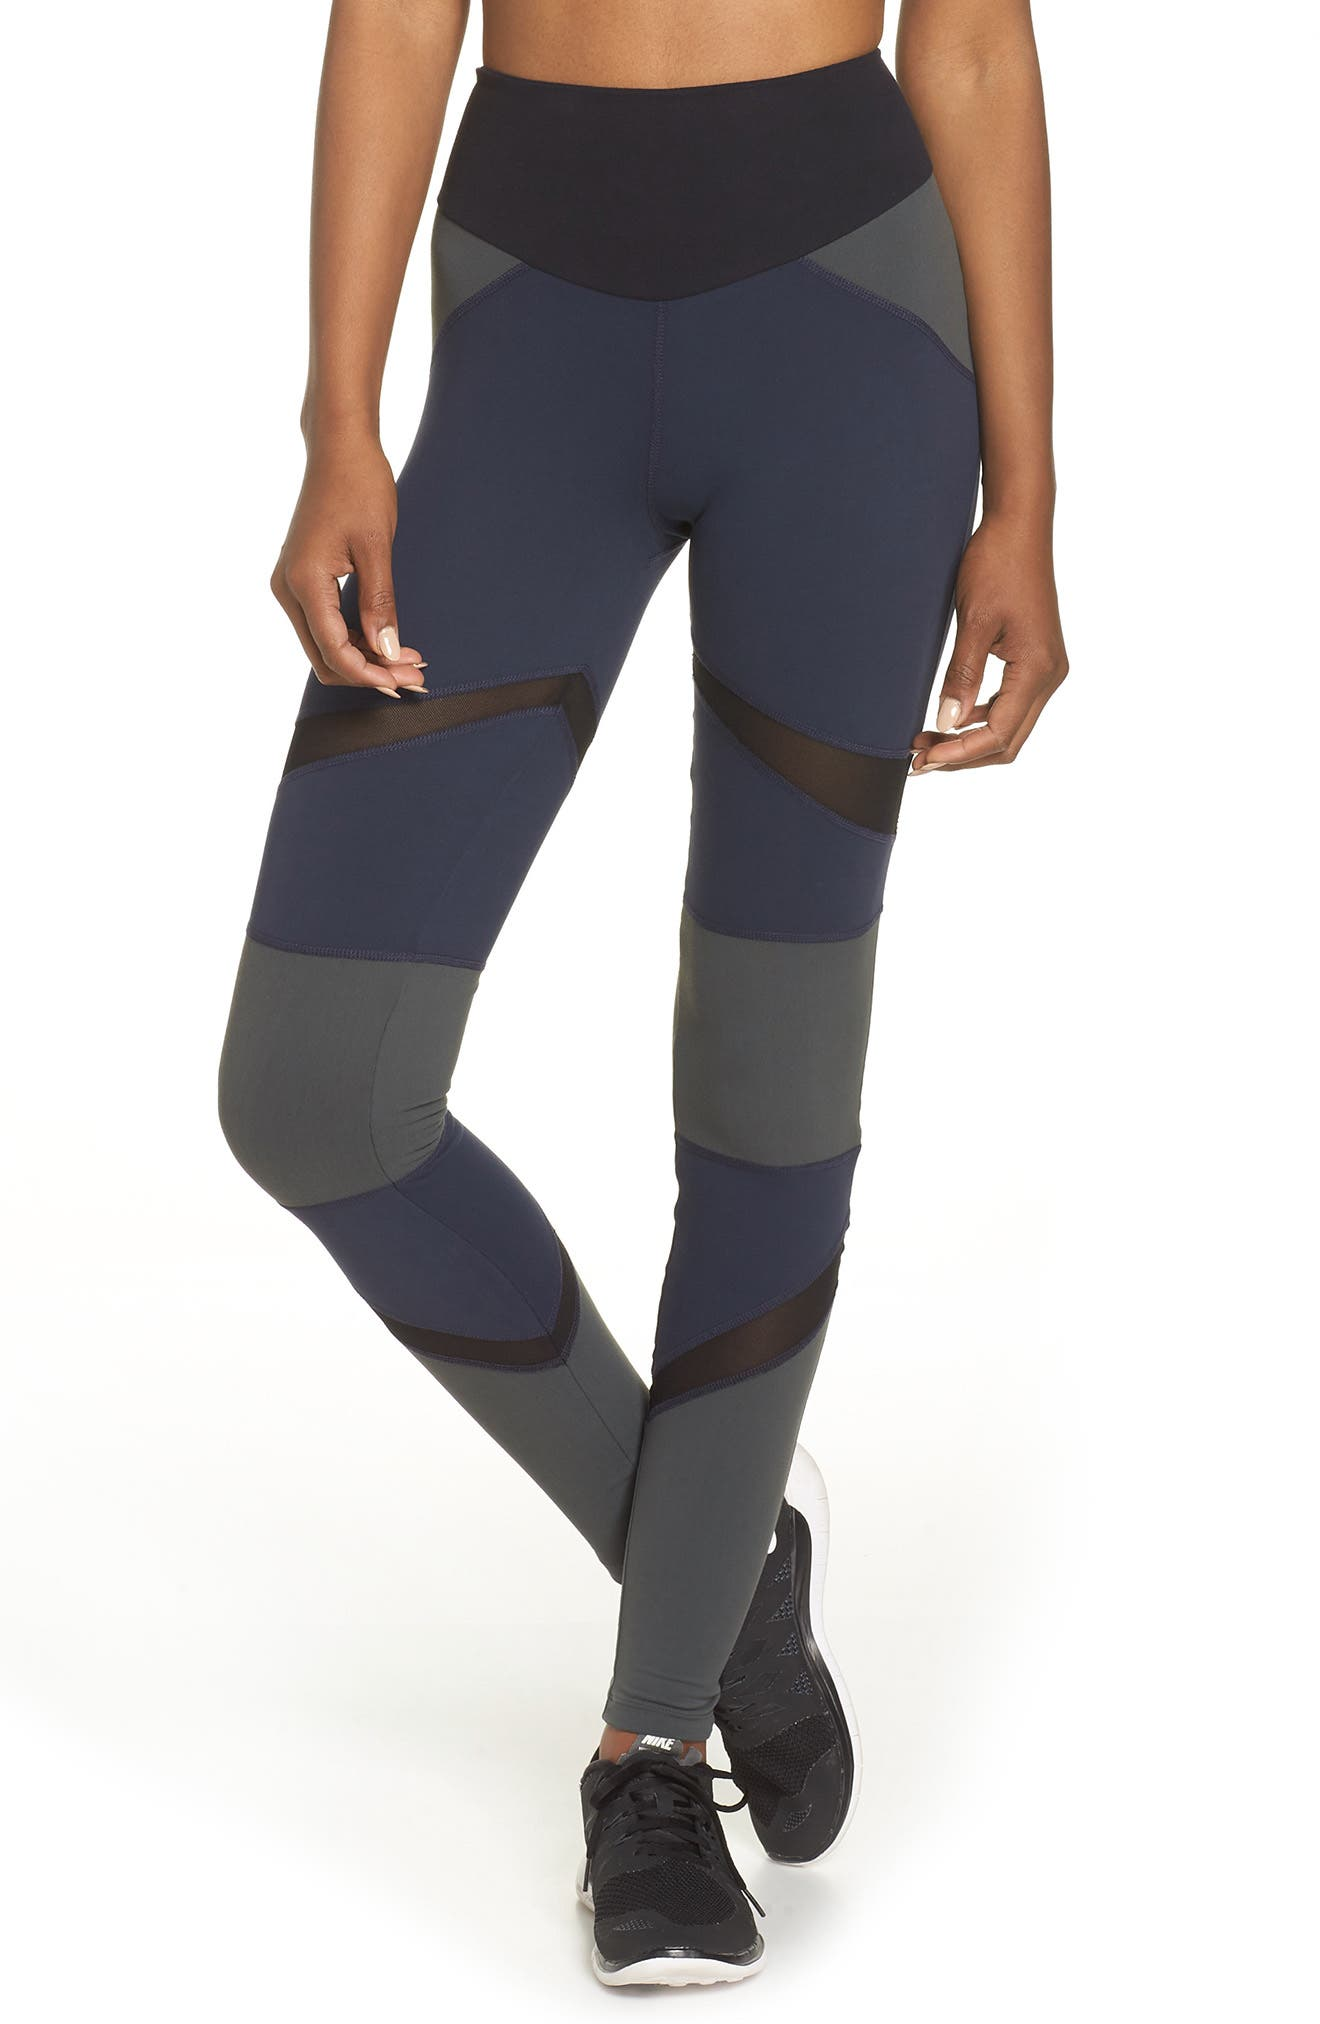 BoomBoom Athletica Brushed Tricolor Panel Leggings,                             Main thumbnail 1, color,                             NAVY/ BLACK/ GREEN